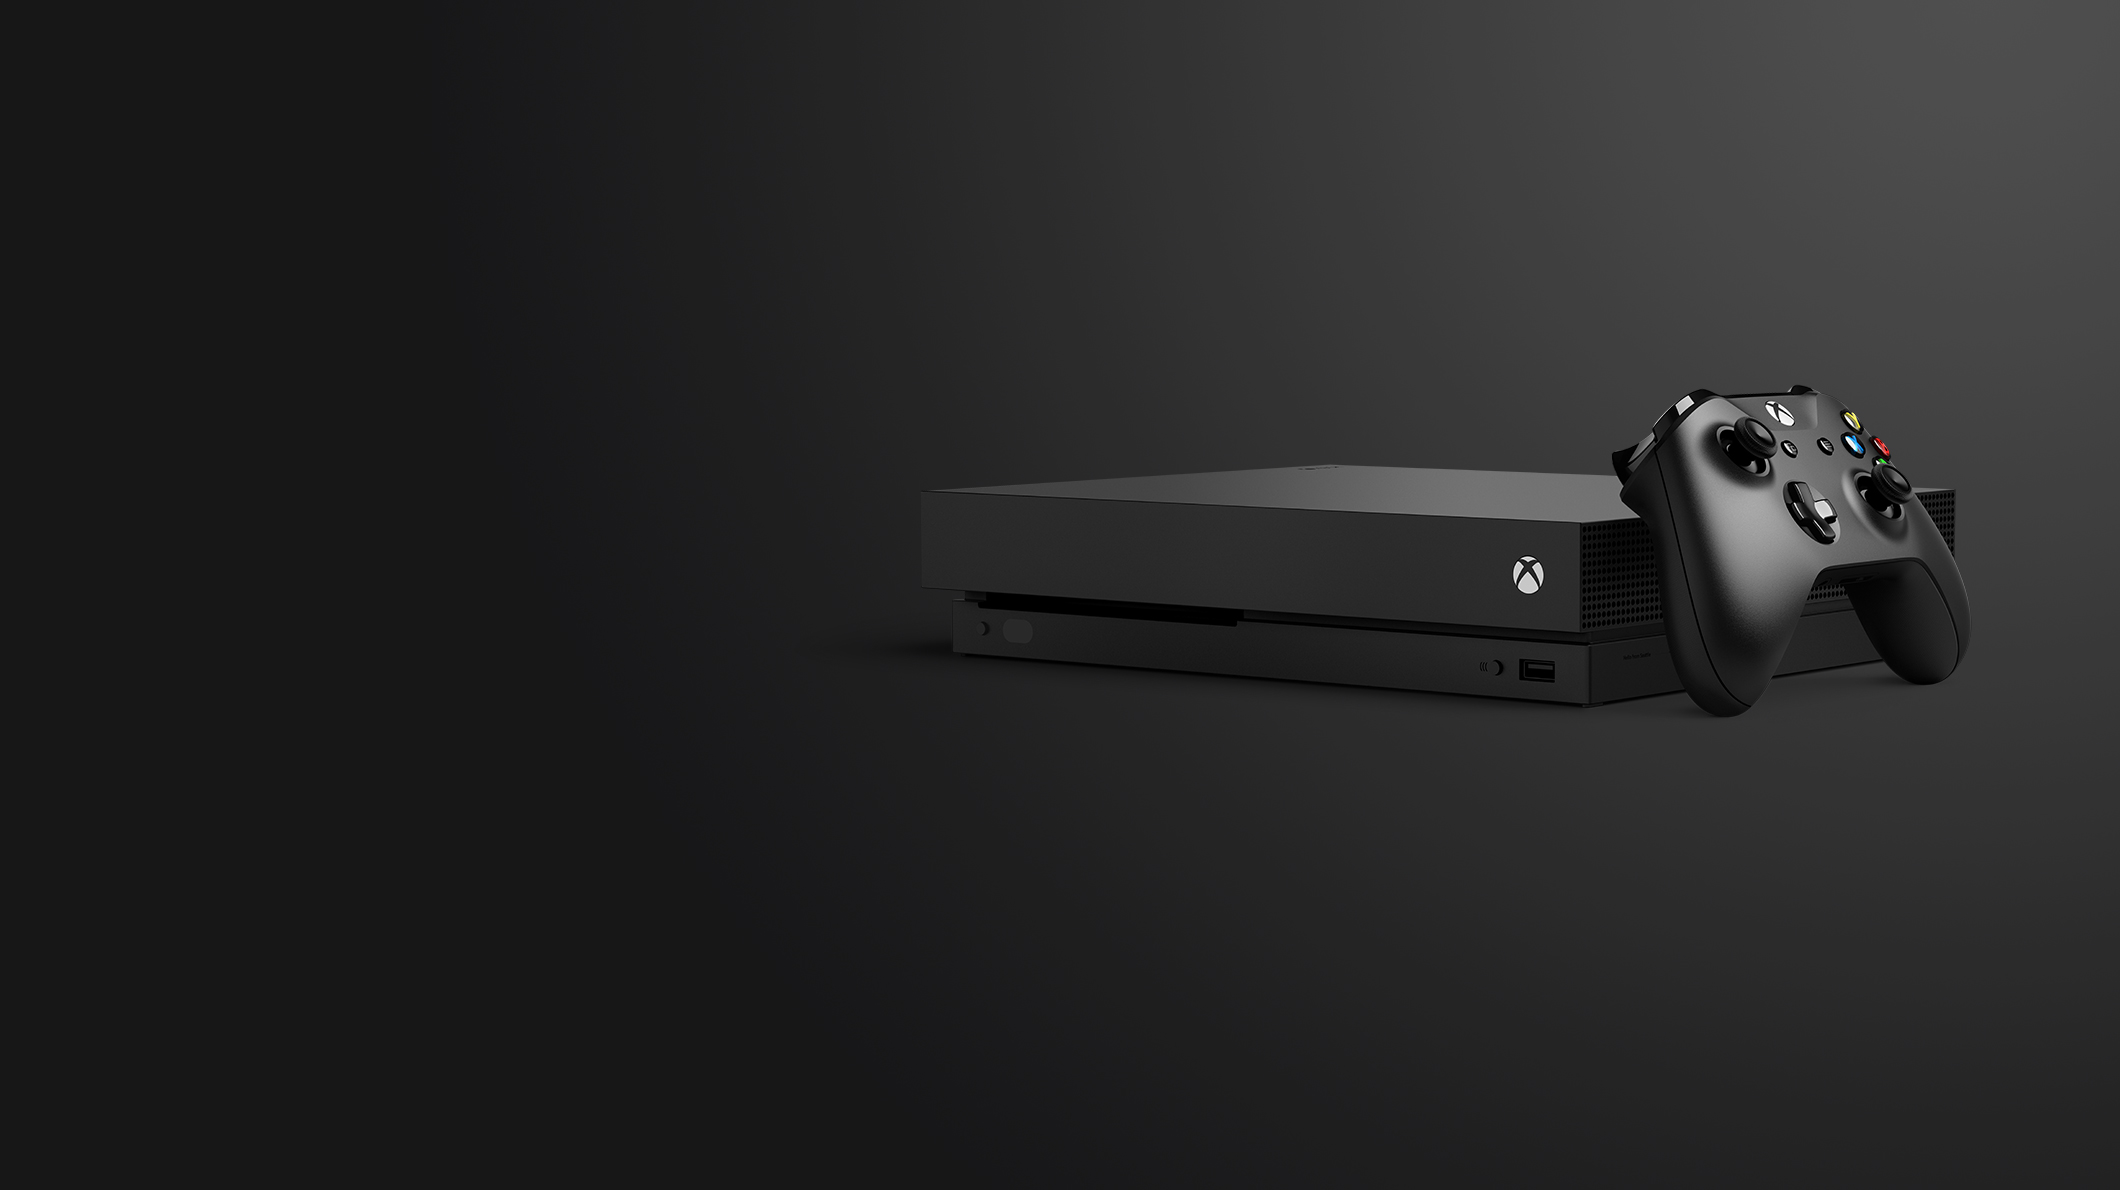 An Xbox One X with controller